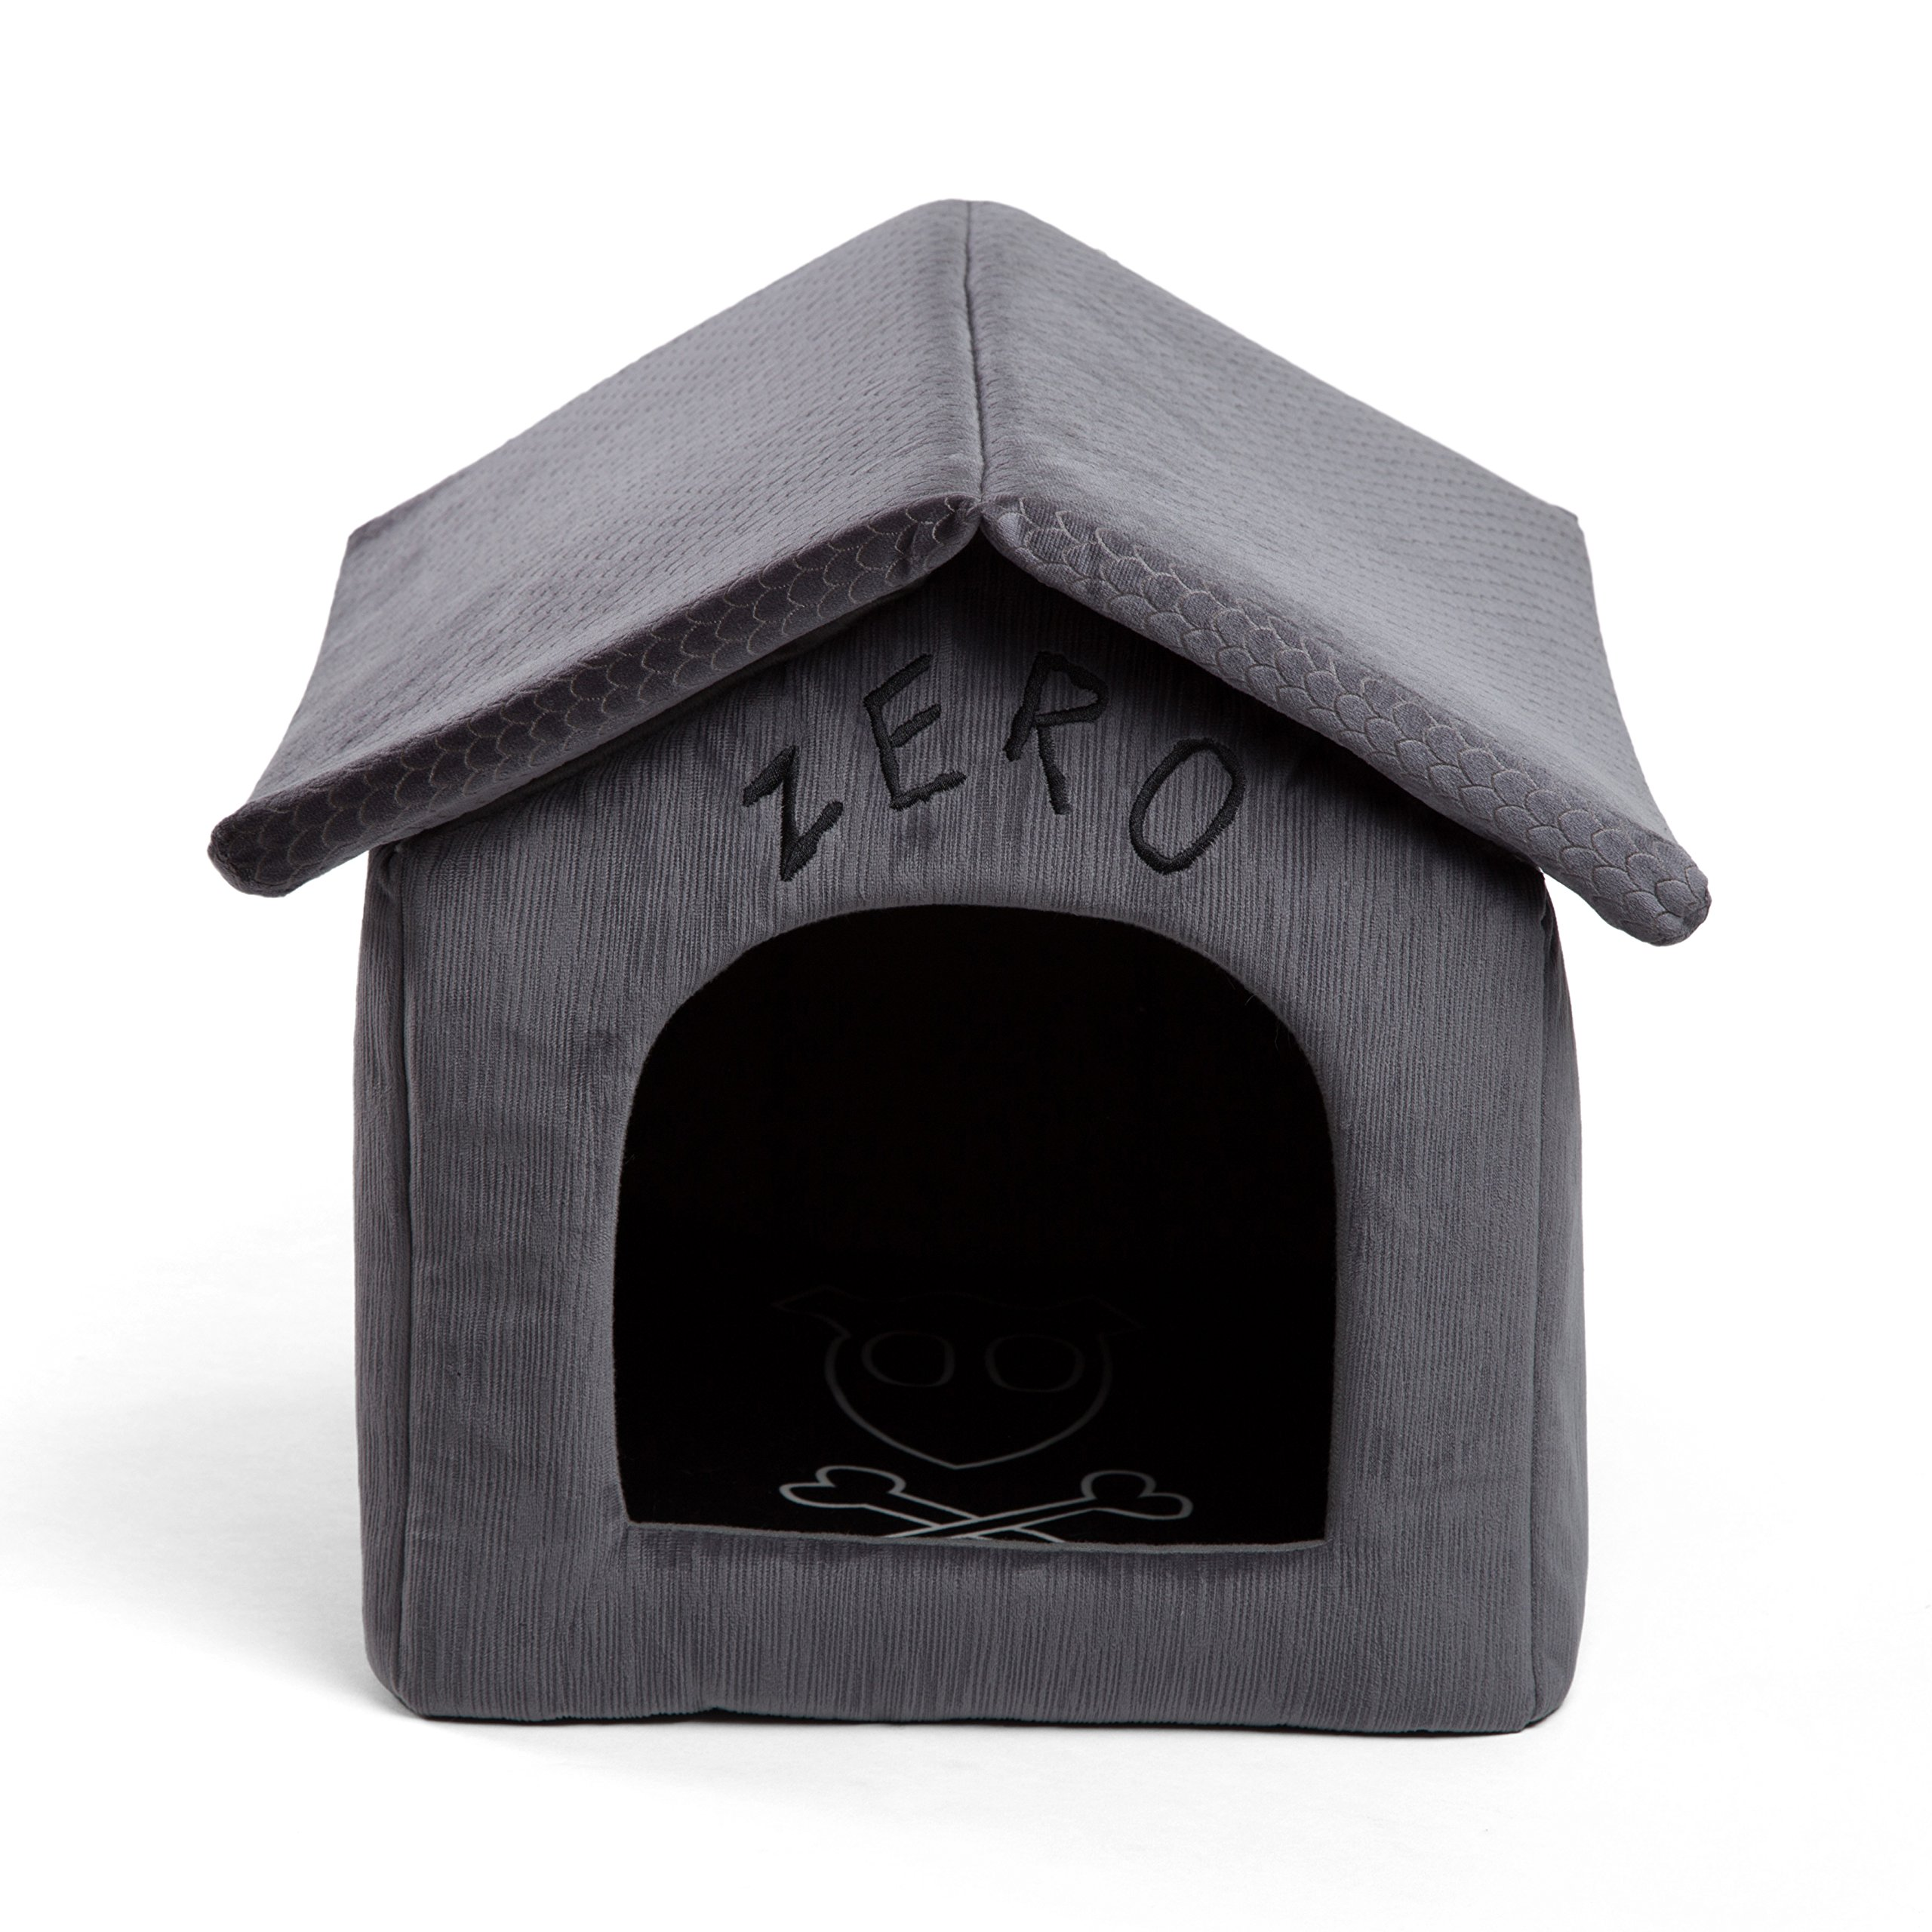 Disney Nightmare Before Christmas Zero Portable Pet House Dog Bed / Cat Bed with Detachable Top, Embroidery, Machine…